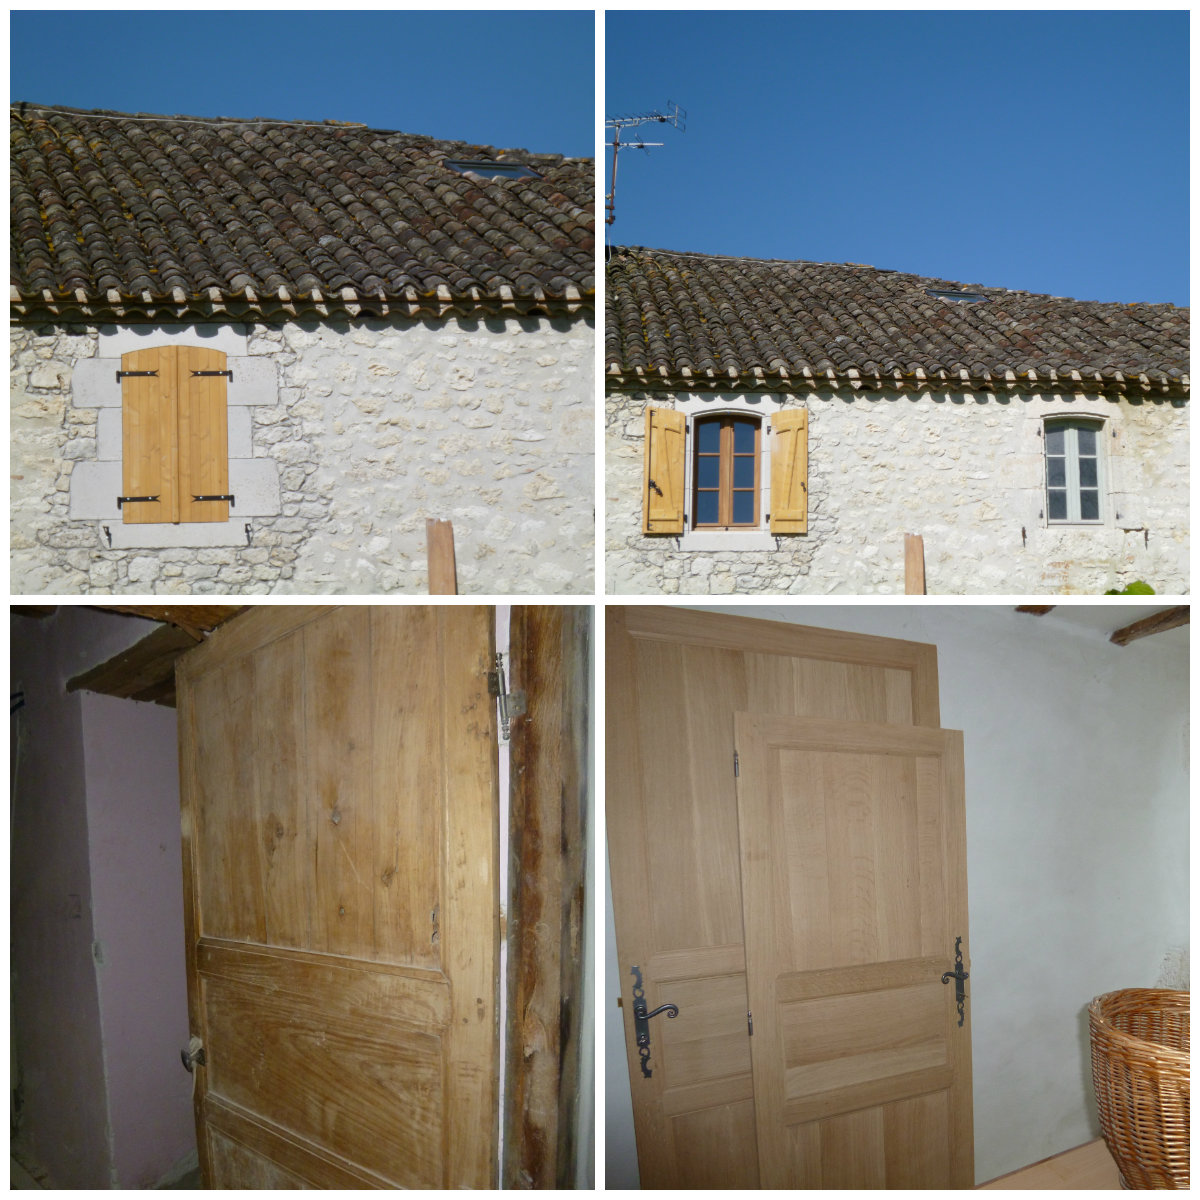 Top pictures: Shutters closed, shutters open. Bottom Picture: The old pine door on the left is the inspiration for the new doors on the right.